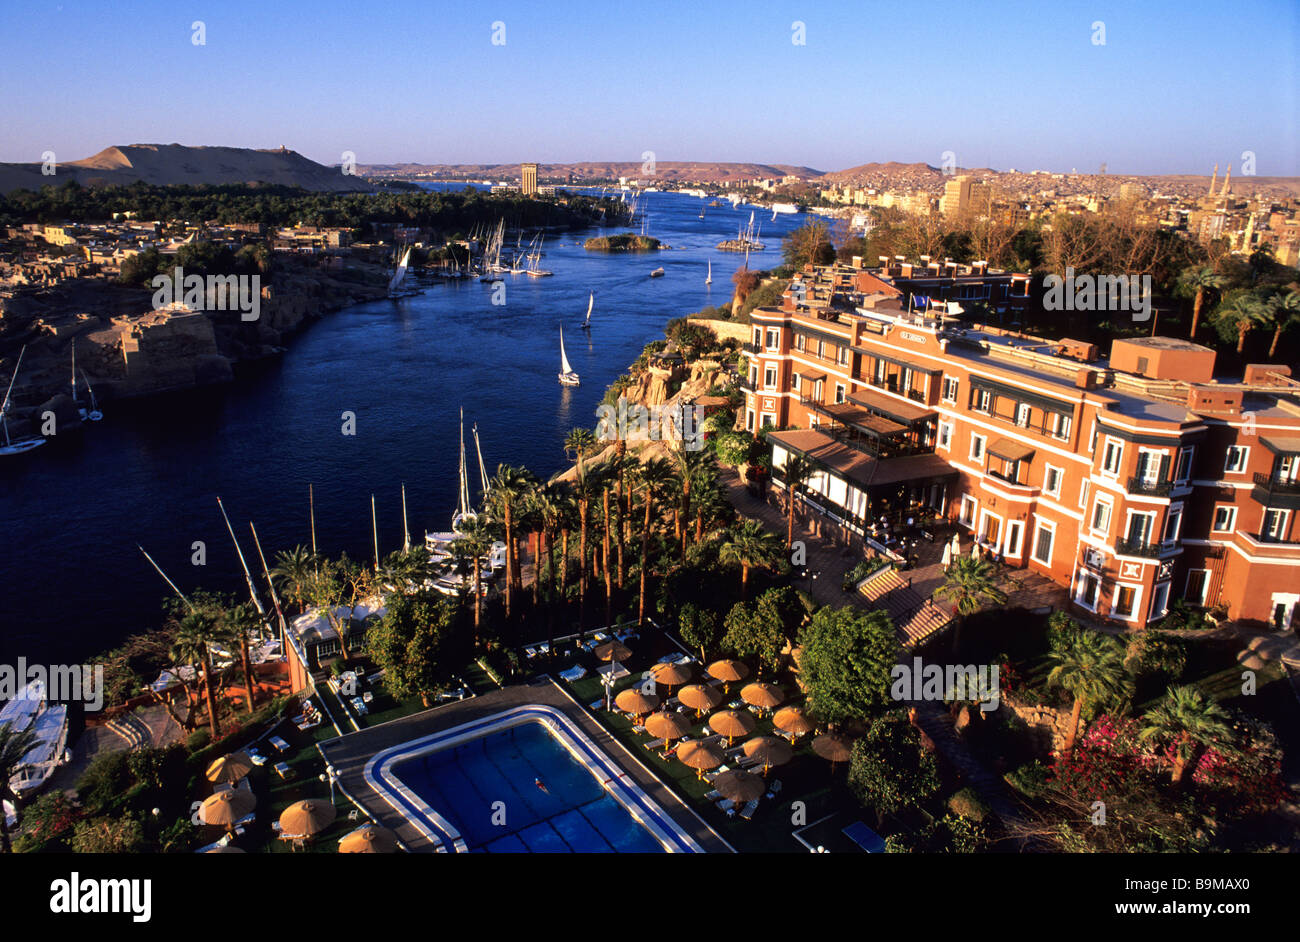 Egypt, Upper Egypt, Nubia, Aswan, Feluccas on the Nile river and Old Cataract Hotel - Stock Image